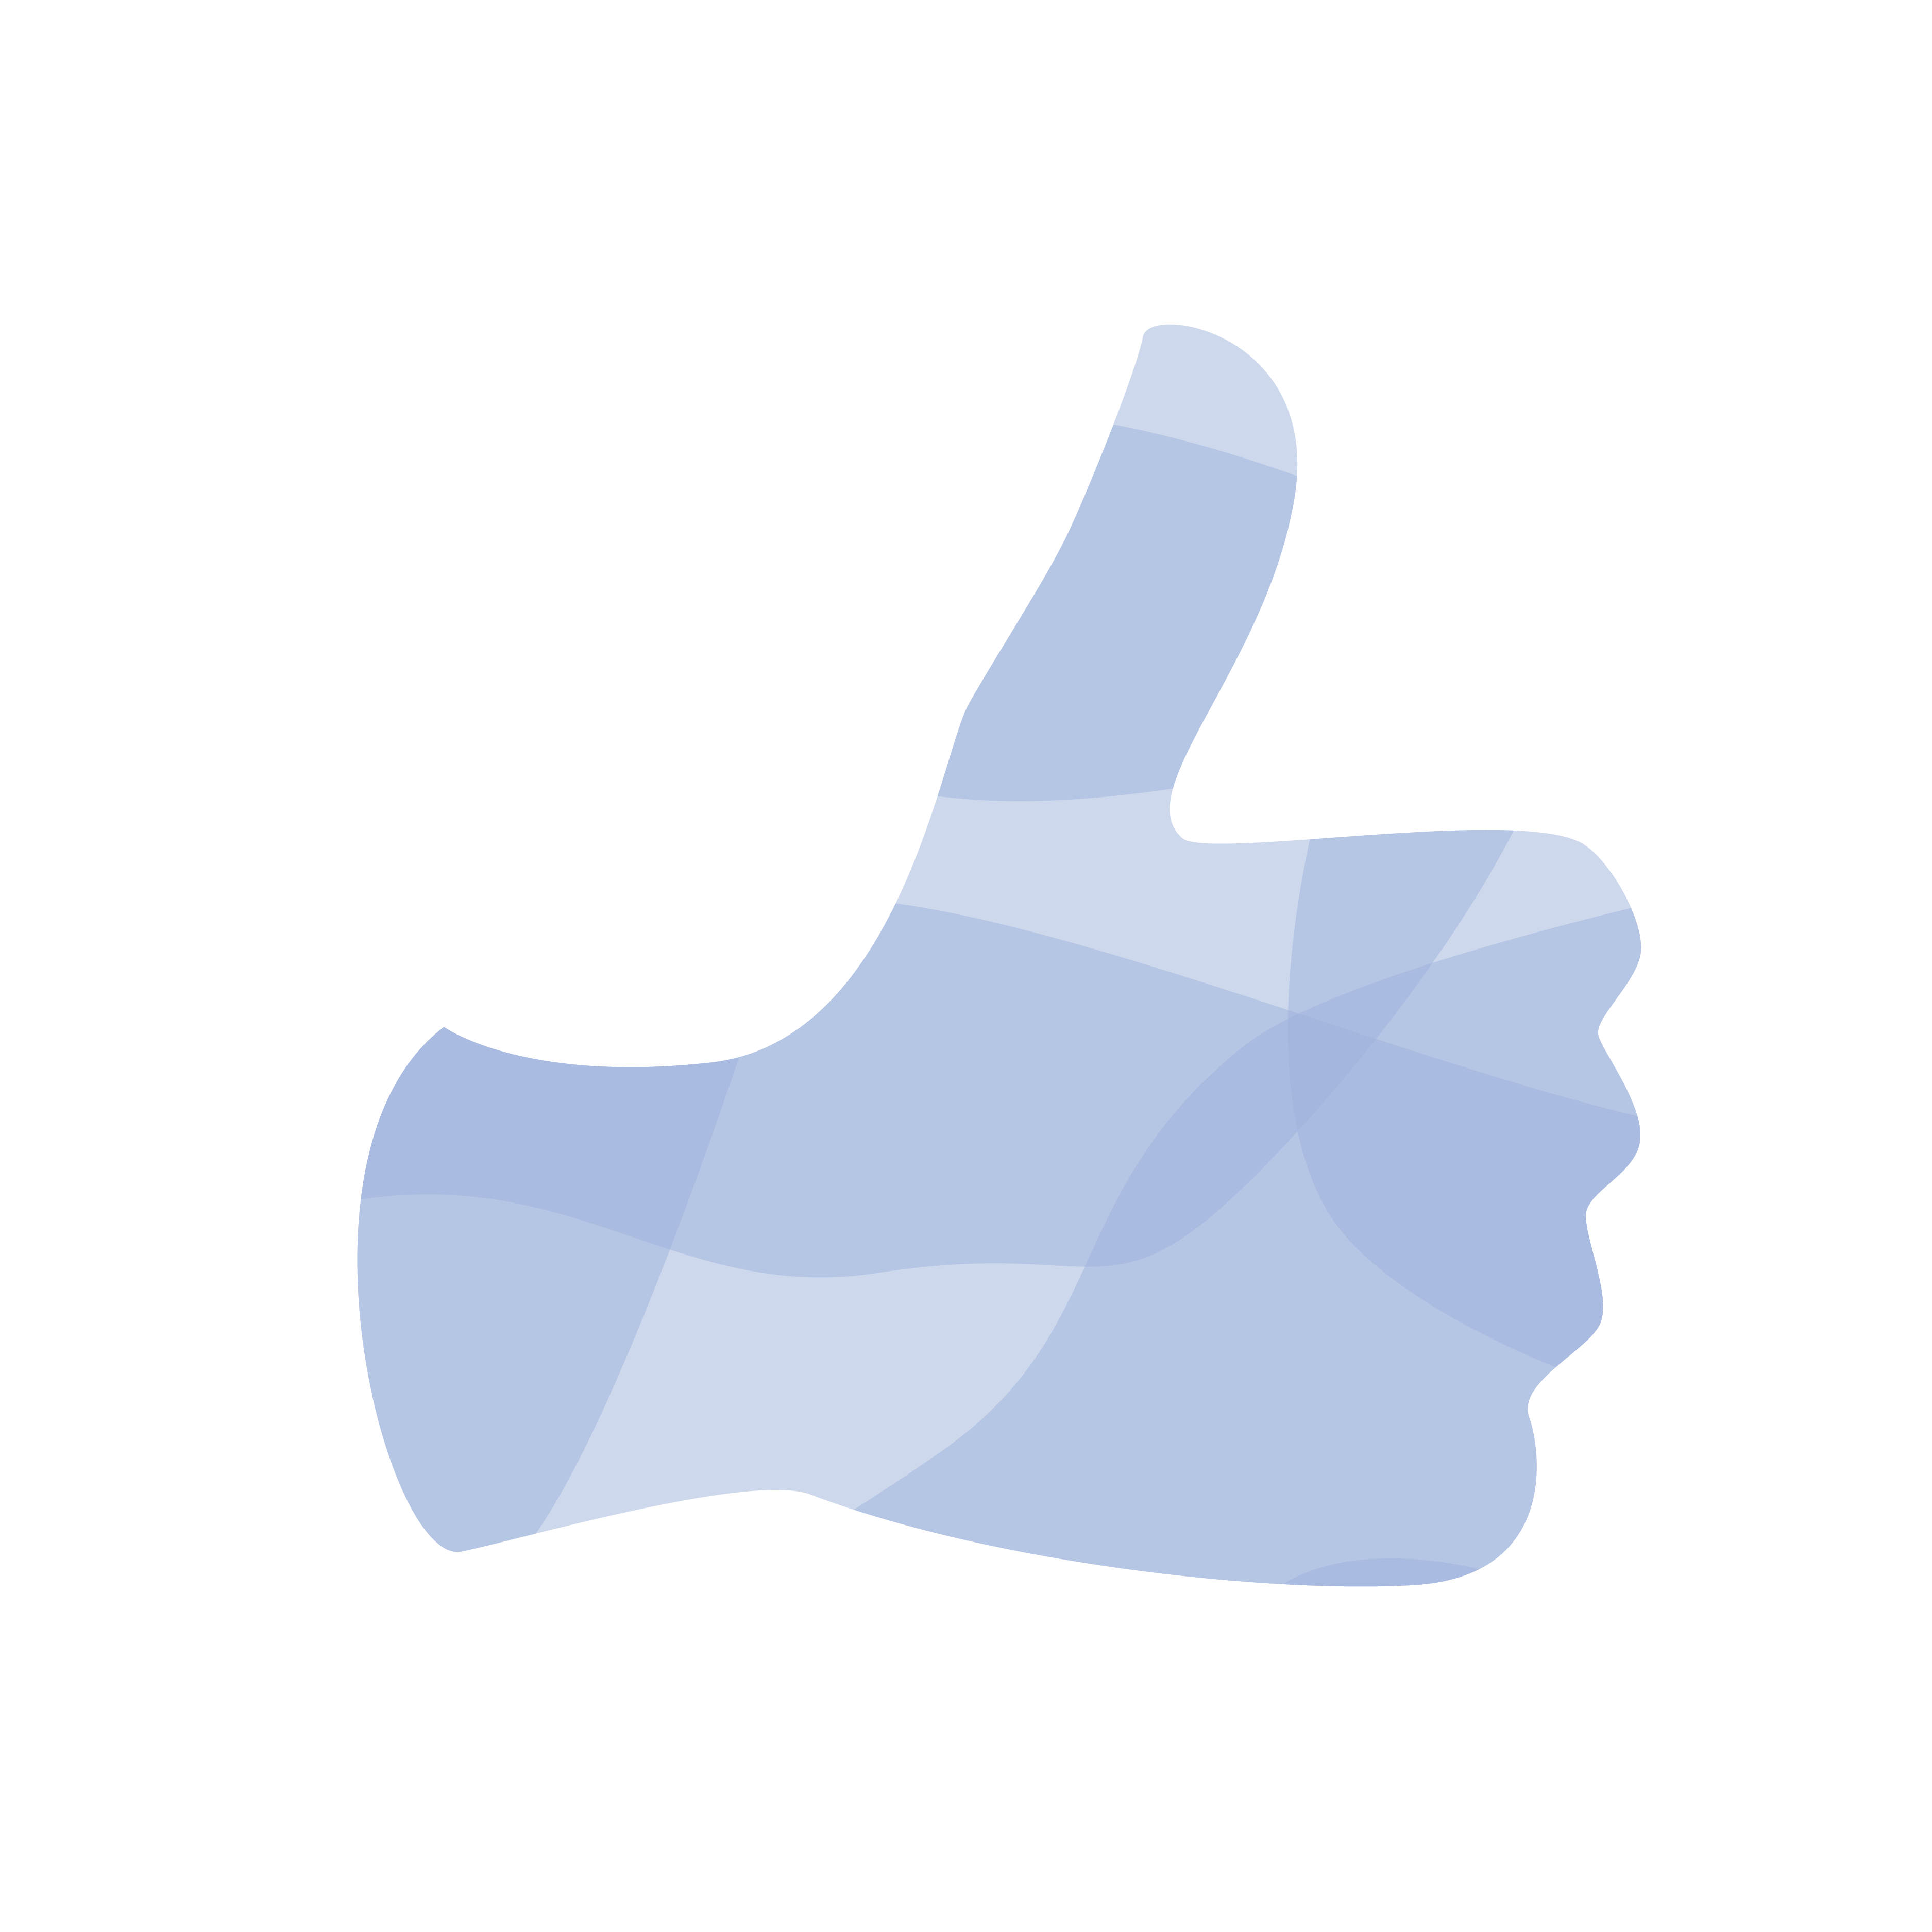 Light purple illustration of a thumbs up